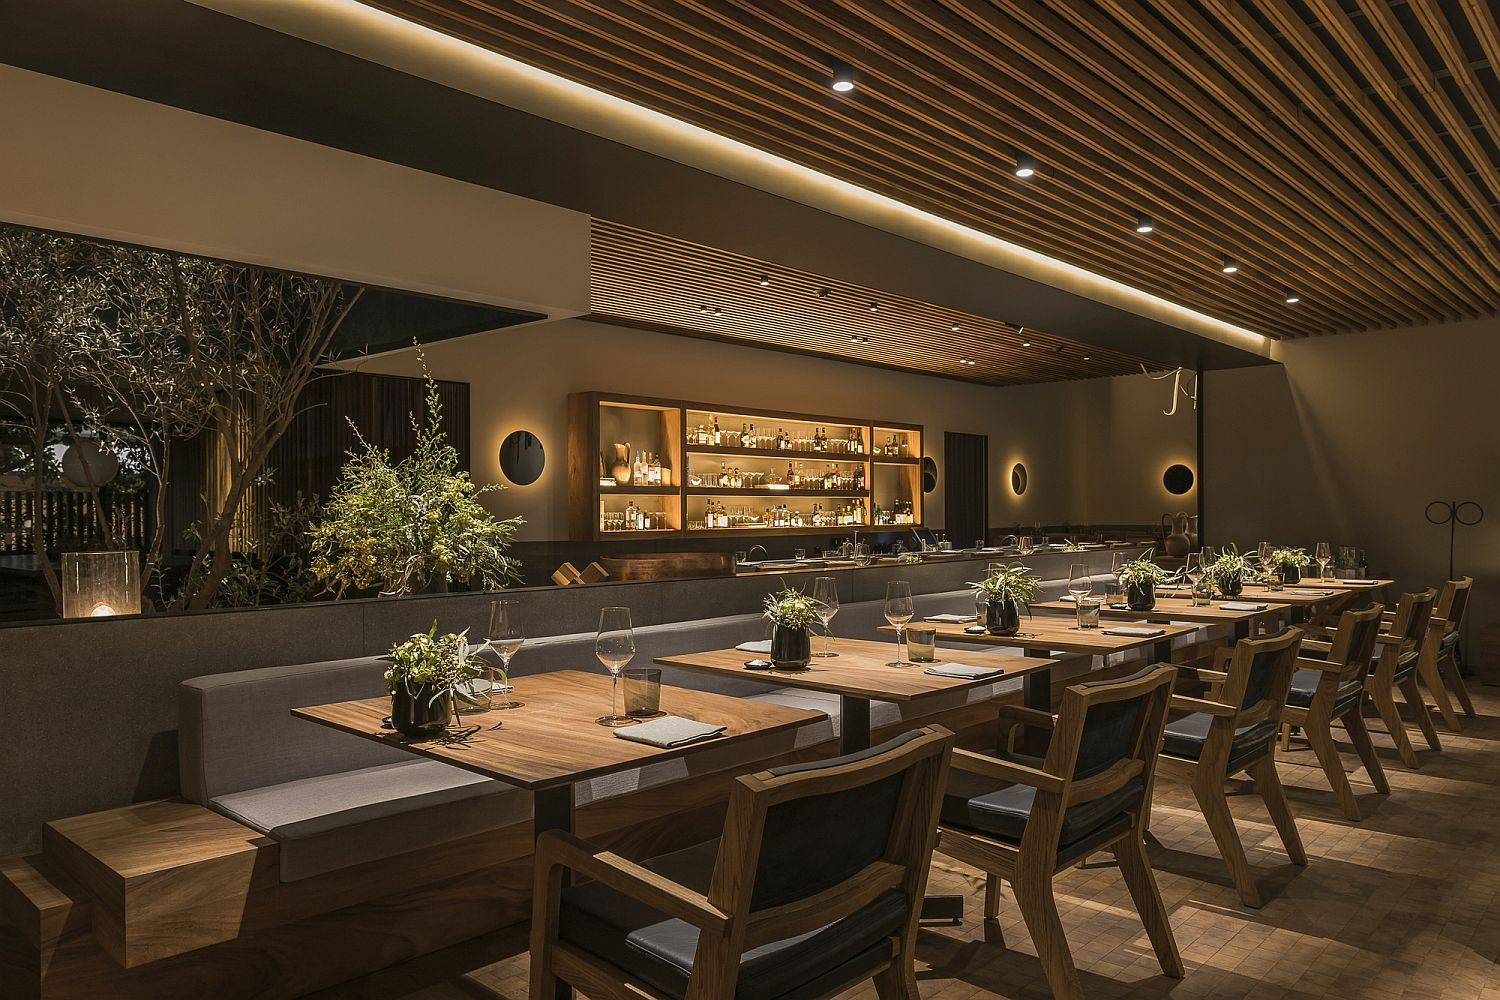 Taste-amazing-Mexican-cuisine-at-its-tasty-best-set-within-a-modern-ambiance-at-Pujol